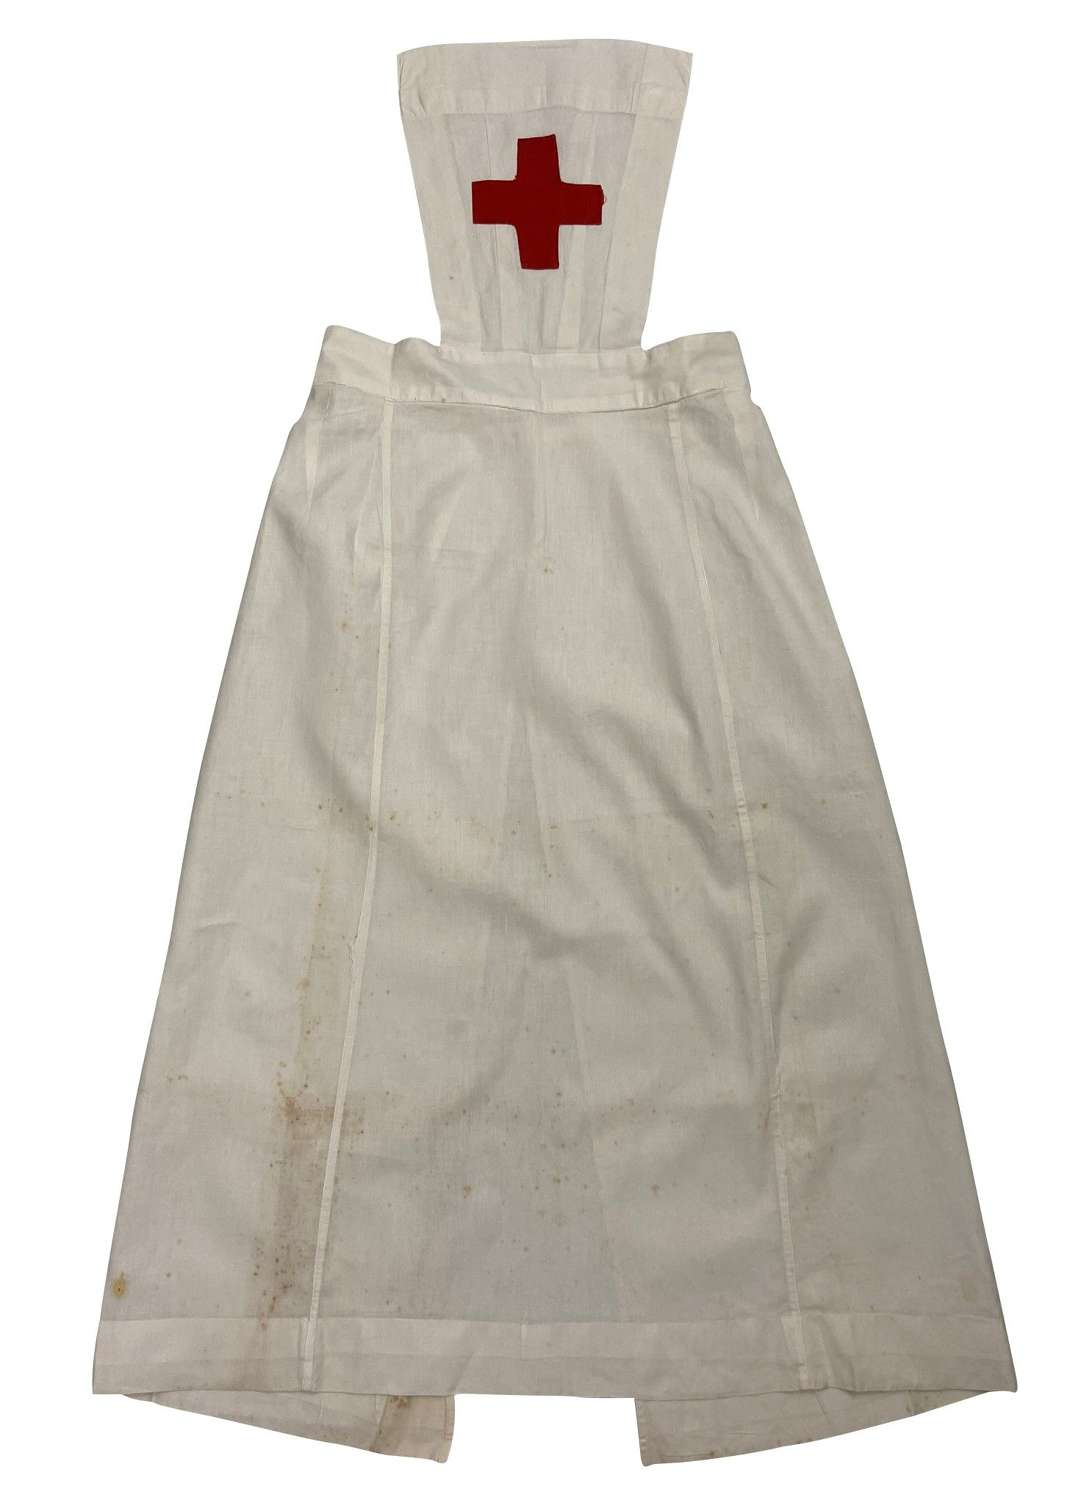 Original 1930s 1940s WW2 Period Nurses Apron